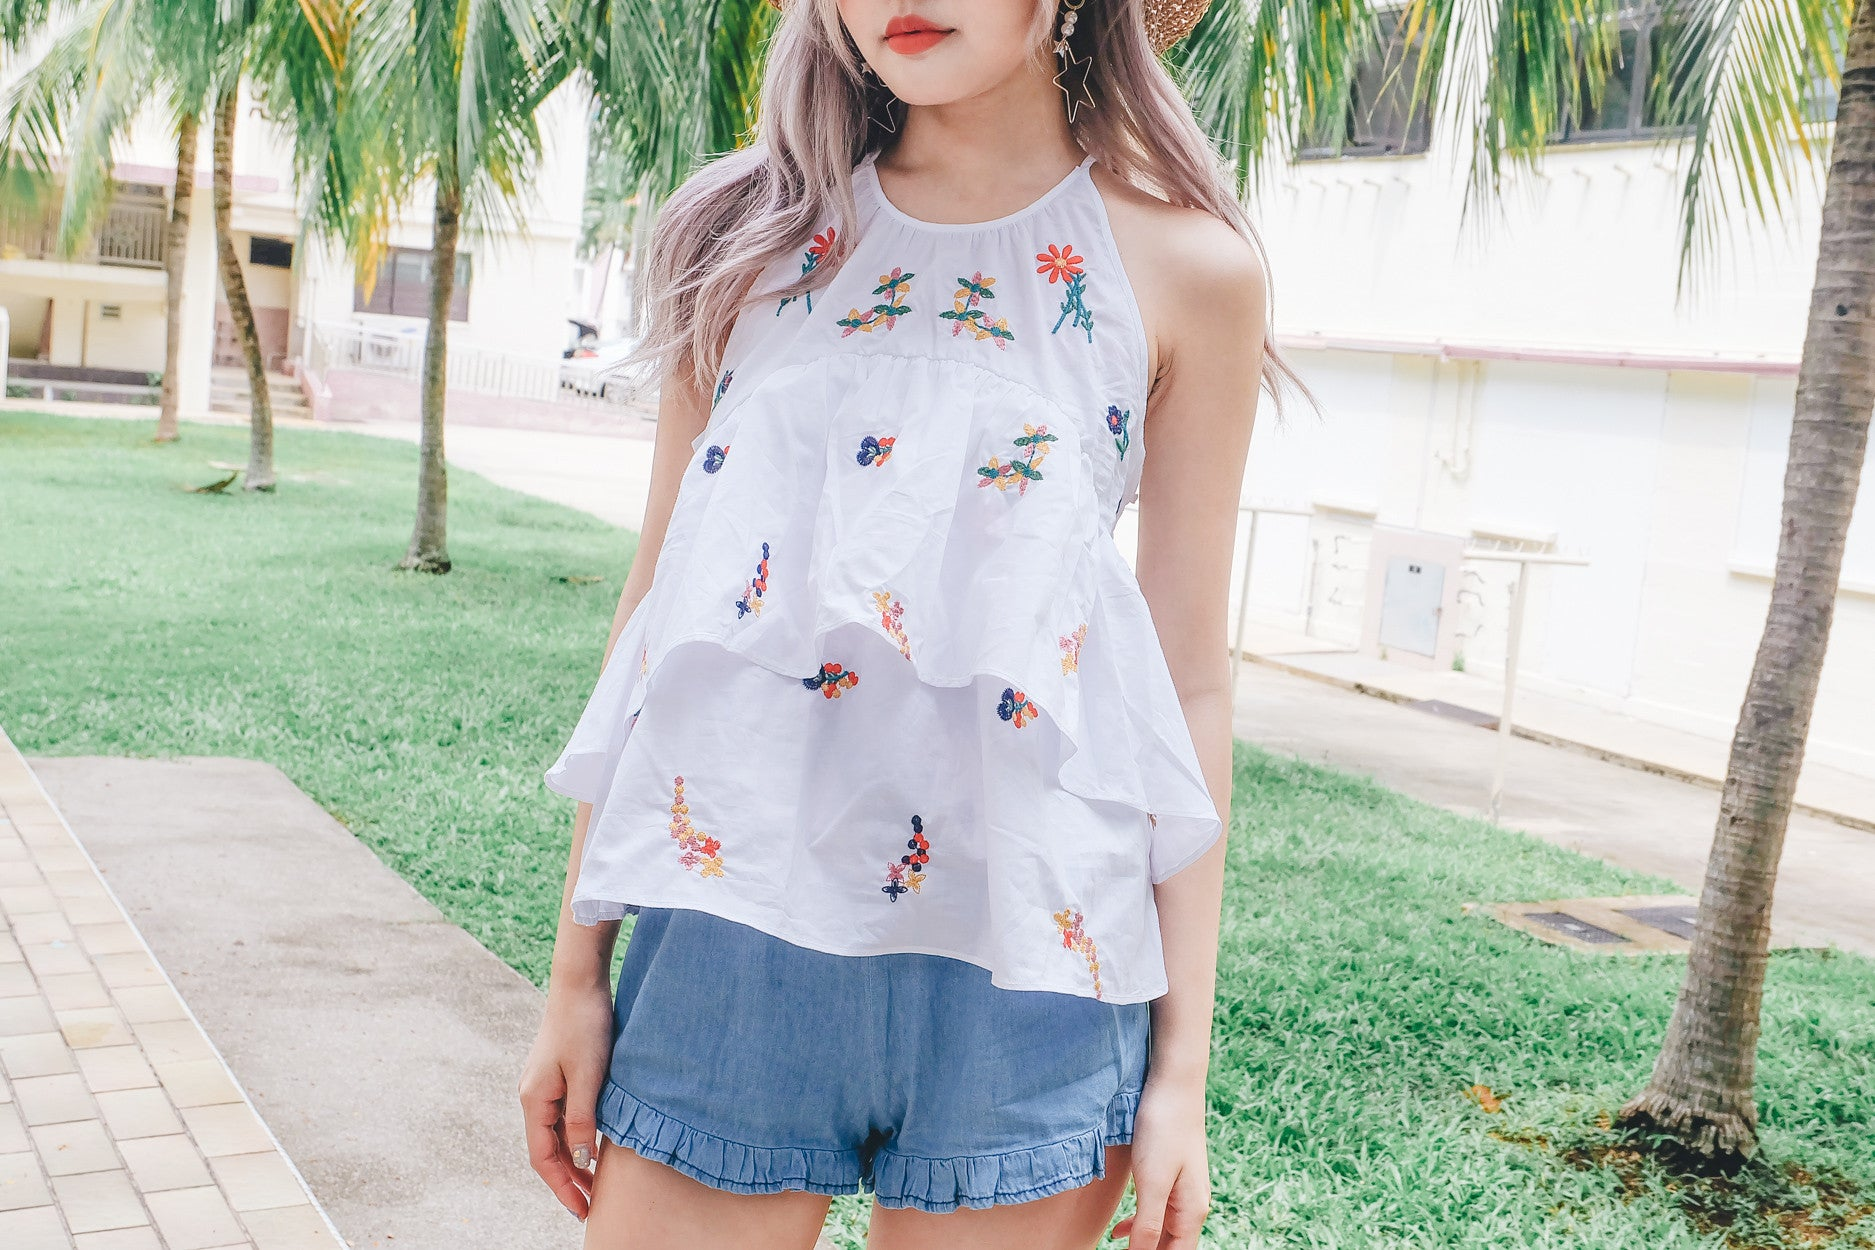 [Restocked] Floral Embroidered Ruffle Top